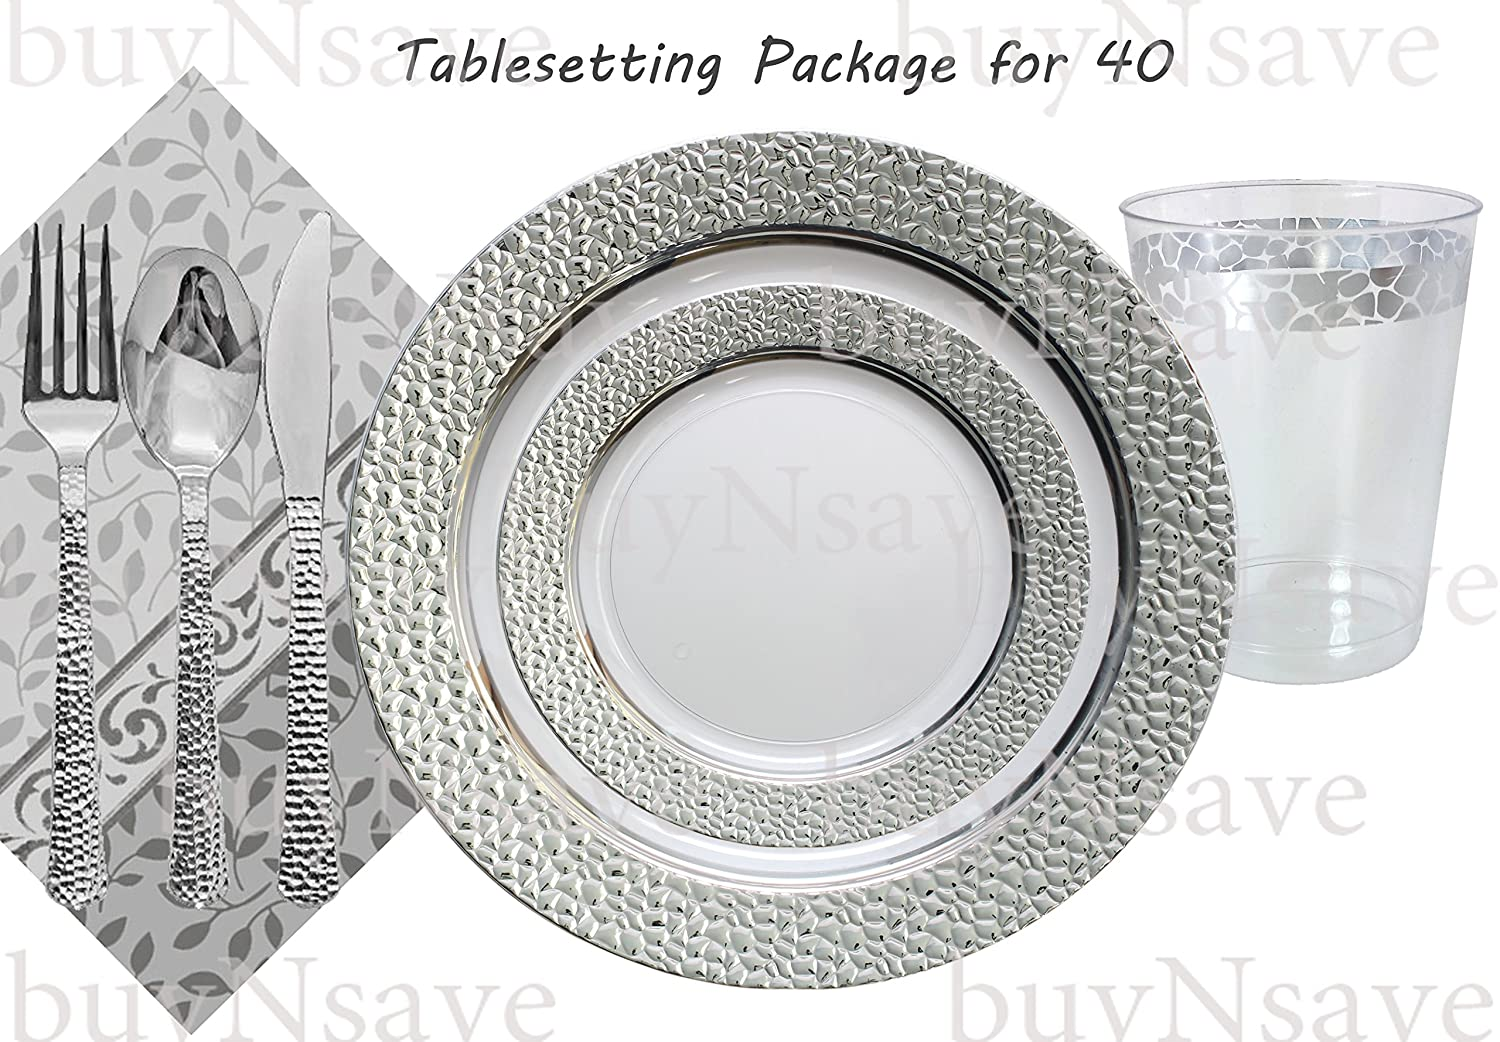 Amazon.com Elegant Wedding Party Disposable Plastic Plates Hammered Clear with Silverfor 40 GuestsDinner Plates10.25 Salad Plates7 NapkinsTumblers ...  sc 1 st  Amazon.com : tableware for weddings - pezcame.com